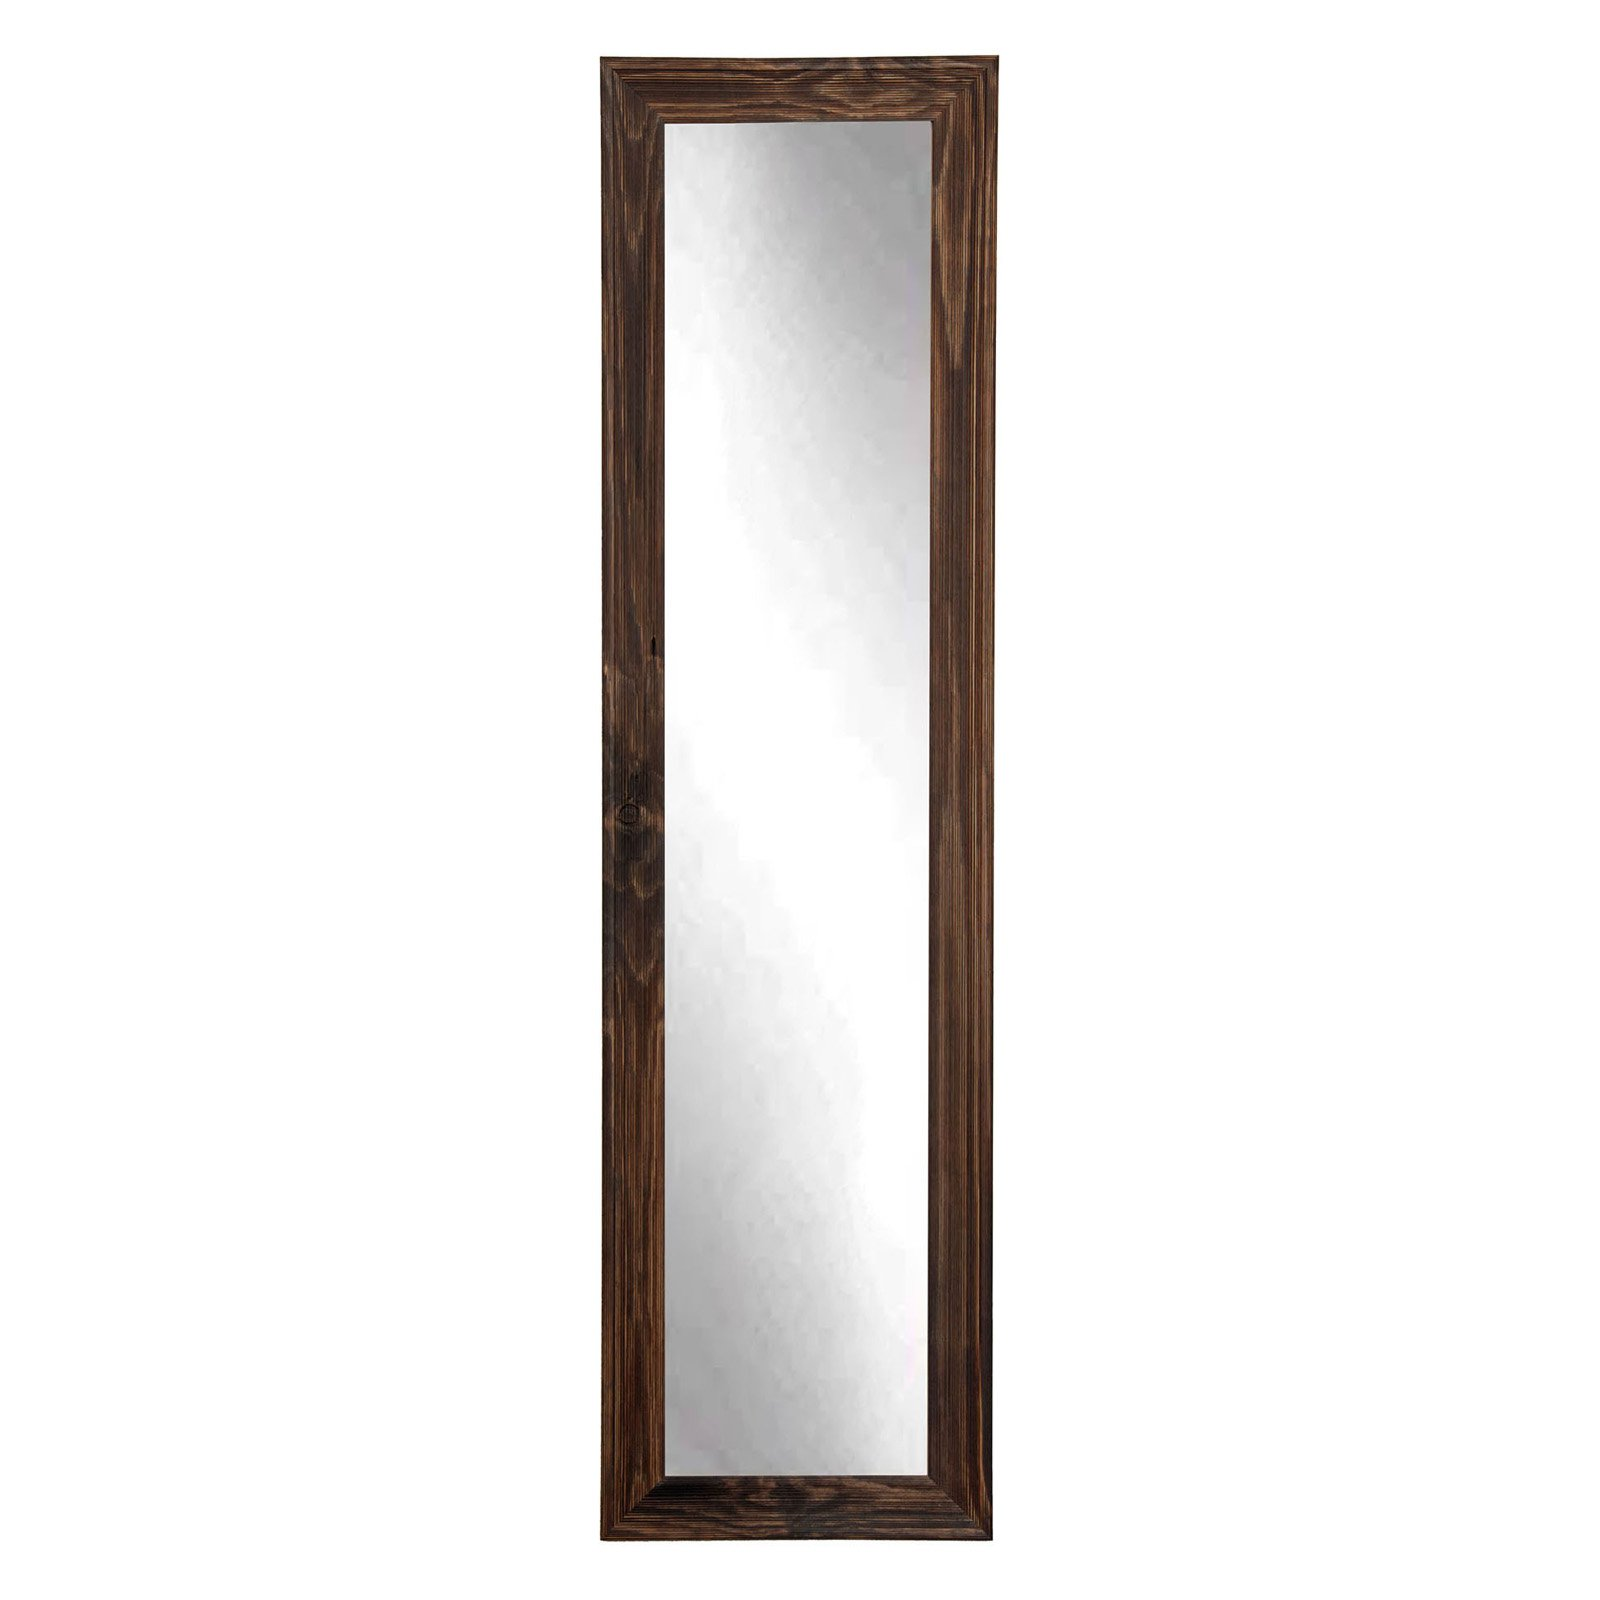 BrandtWorks Designers Choice Leaning Floor Mirror Espresso by Overstock